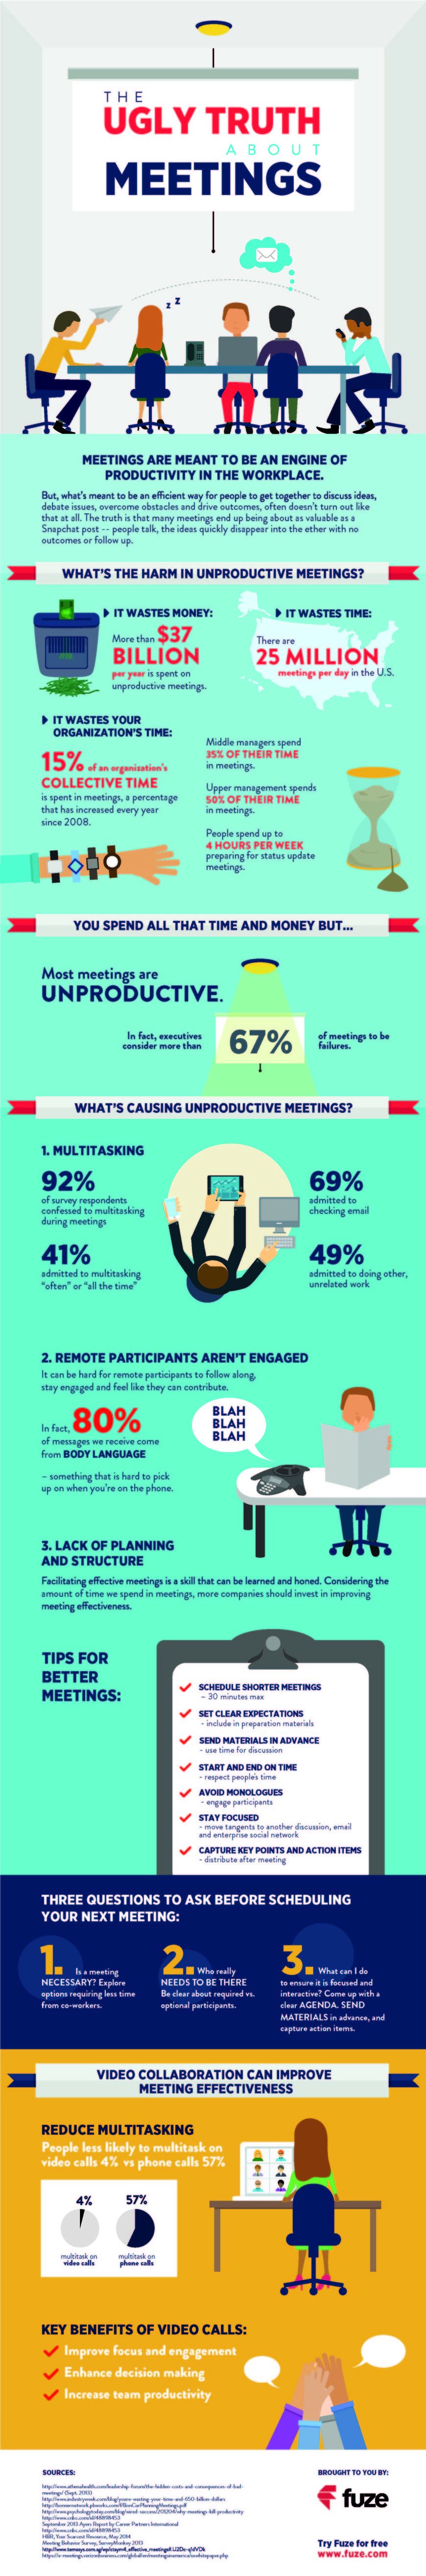 Getting The Most Out Of Your Meetings - infographic